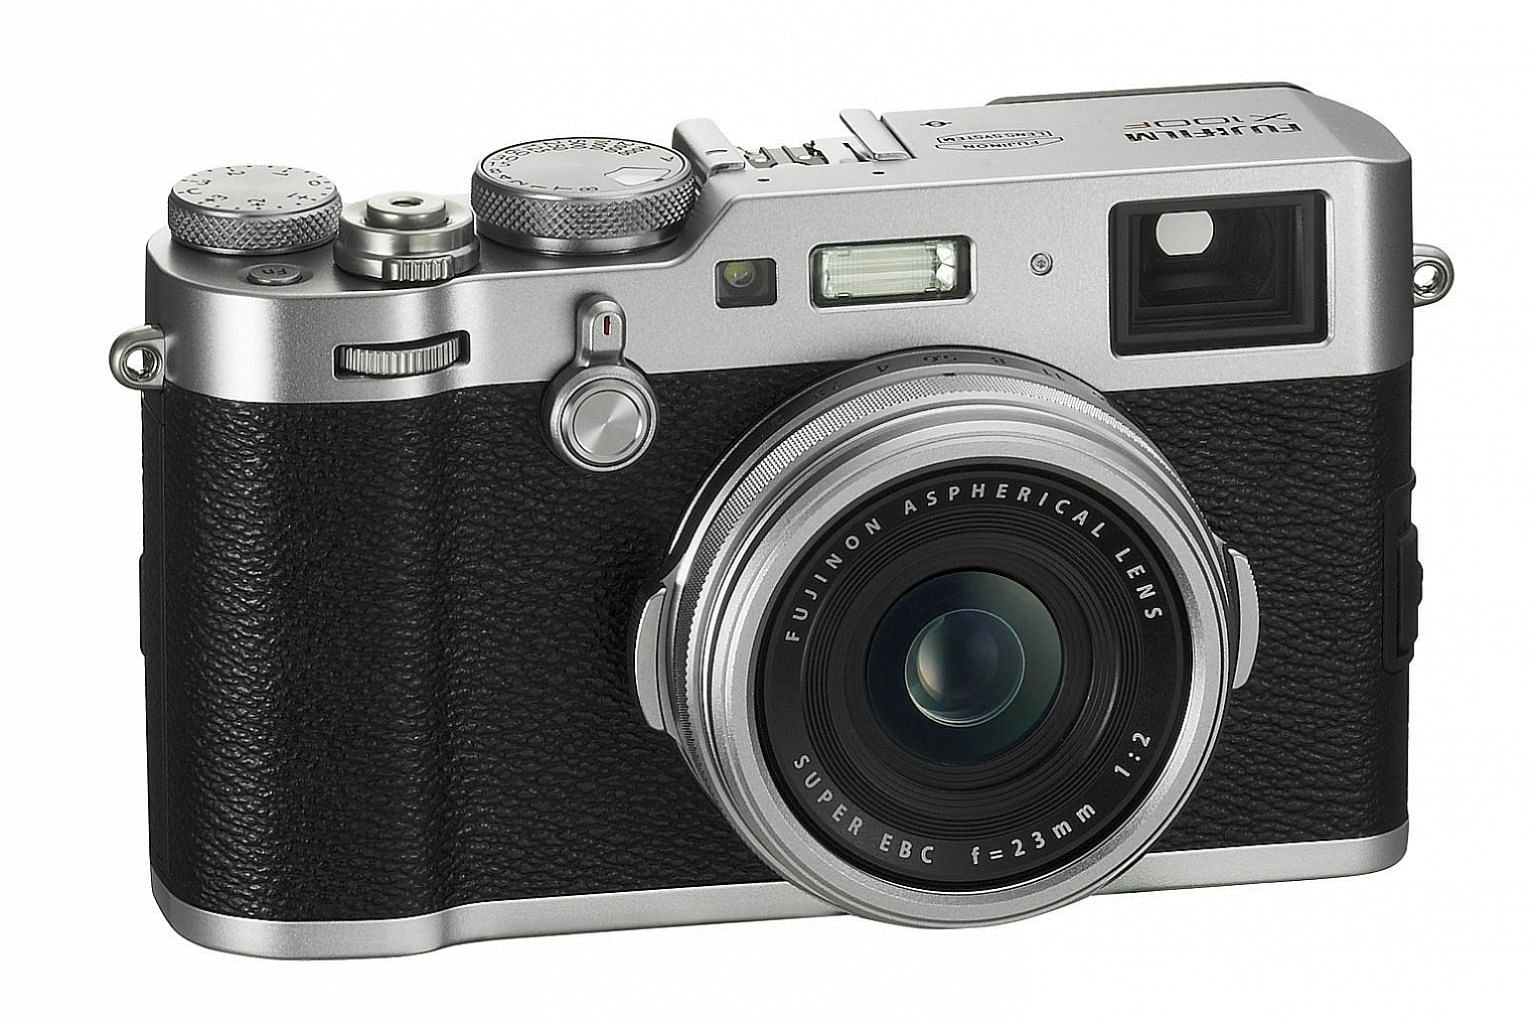 For photographers who have used a rangefinder or manual camera before, the handling of the Fujifilm X100F will feel just as superb.